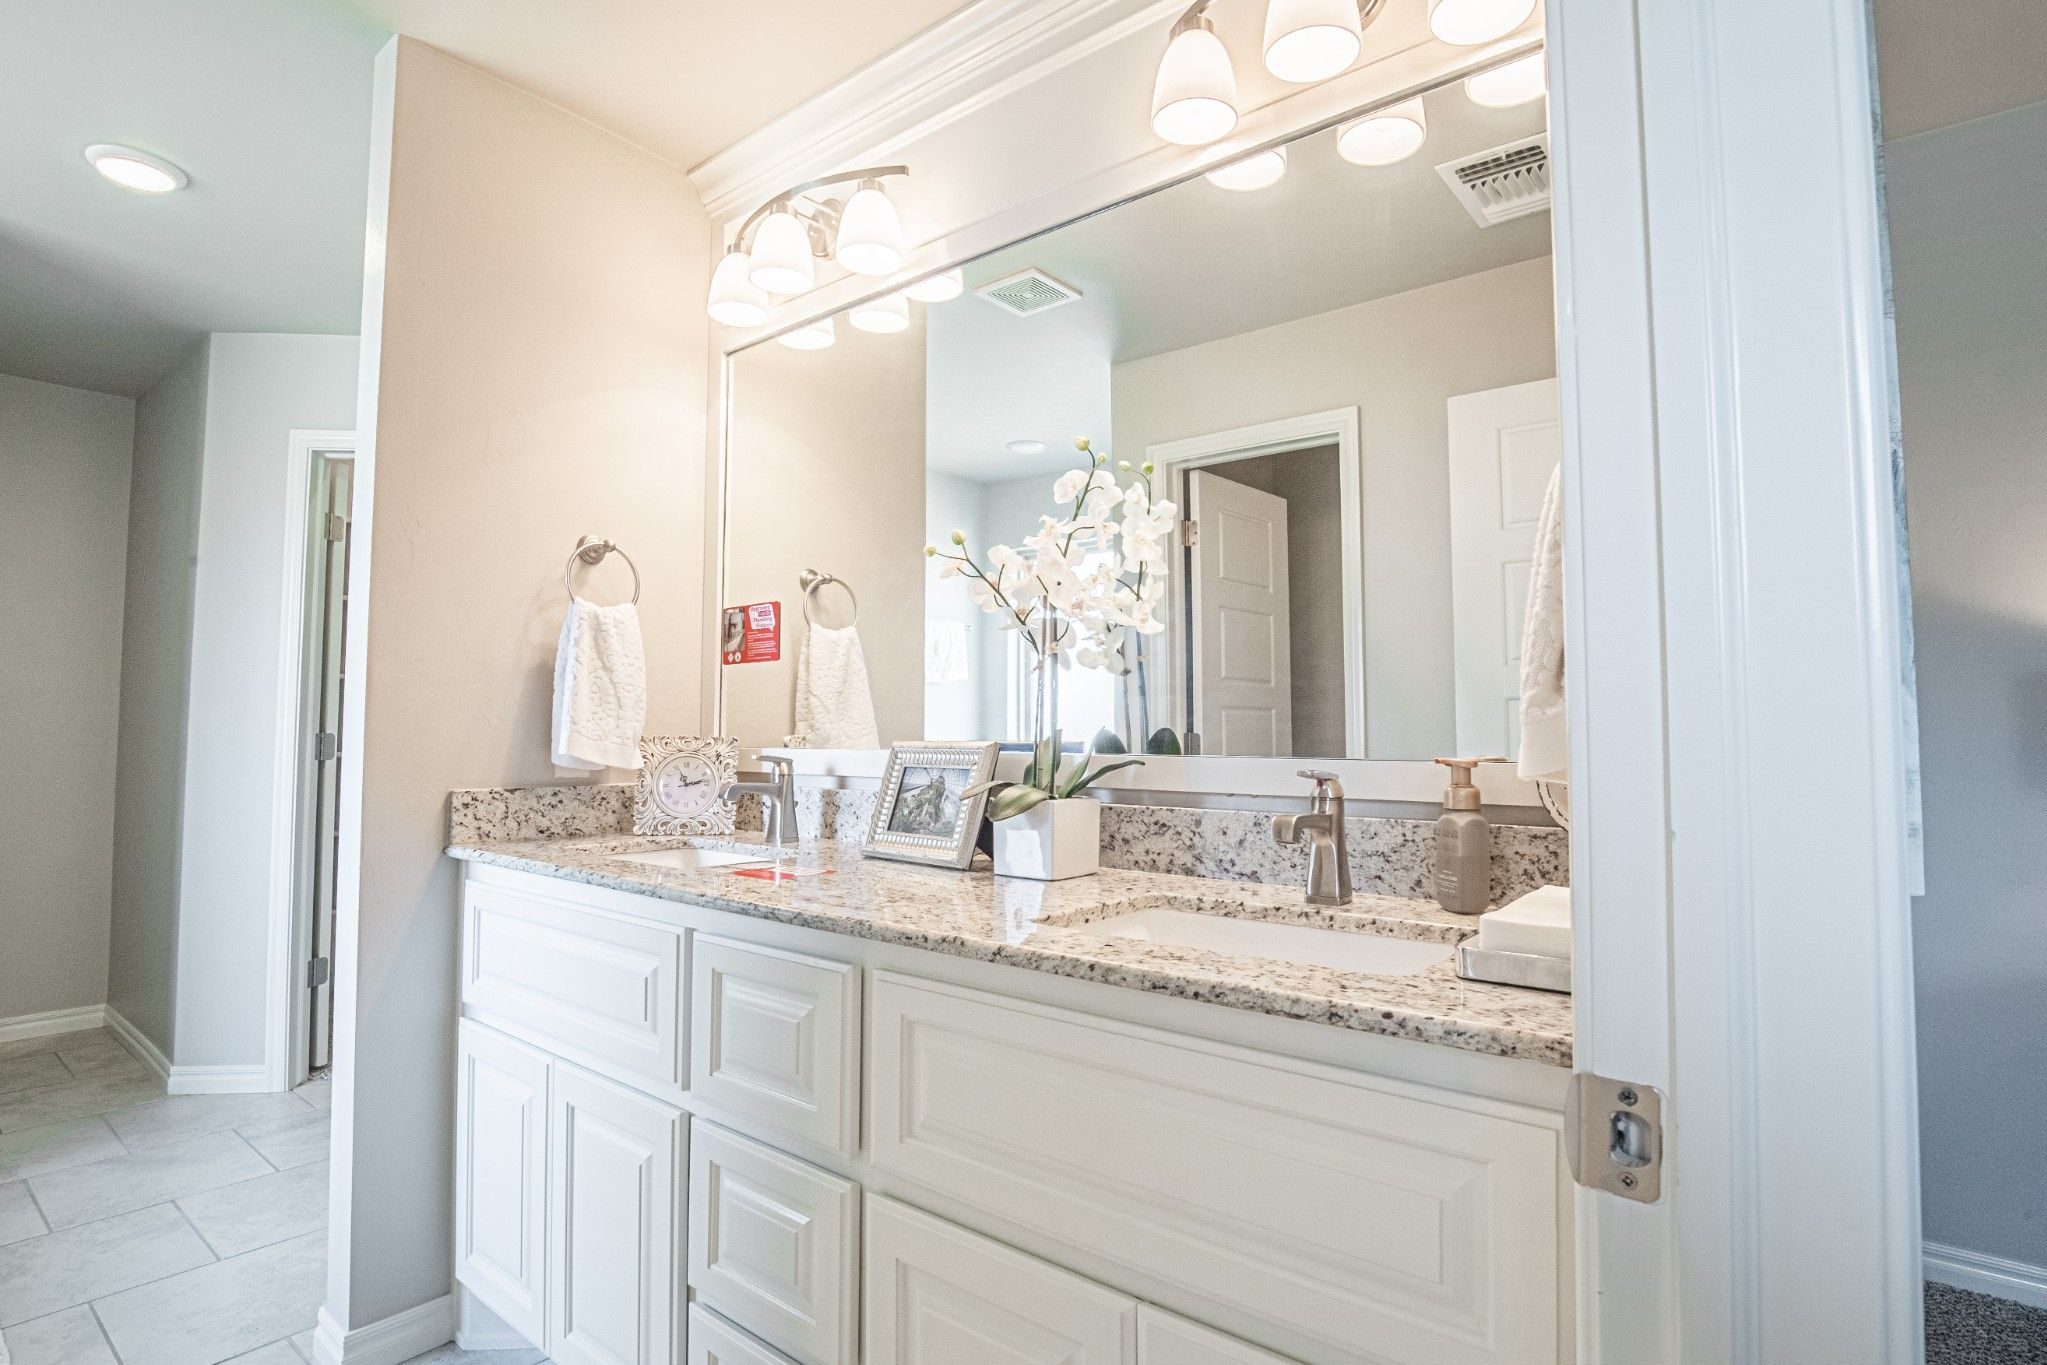 Bathroom featured in the Hummingbird Bonus Room 2 By Homes By Taber in Oklahoma City, OK